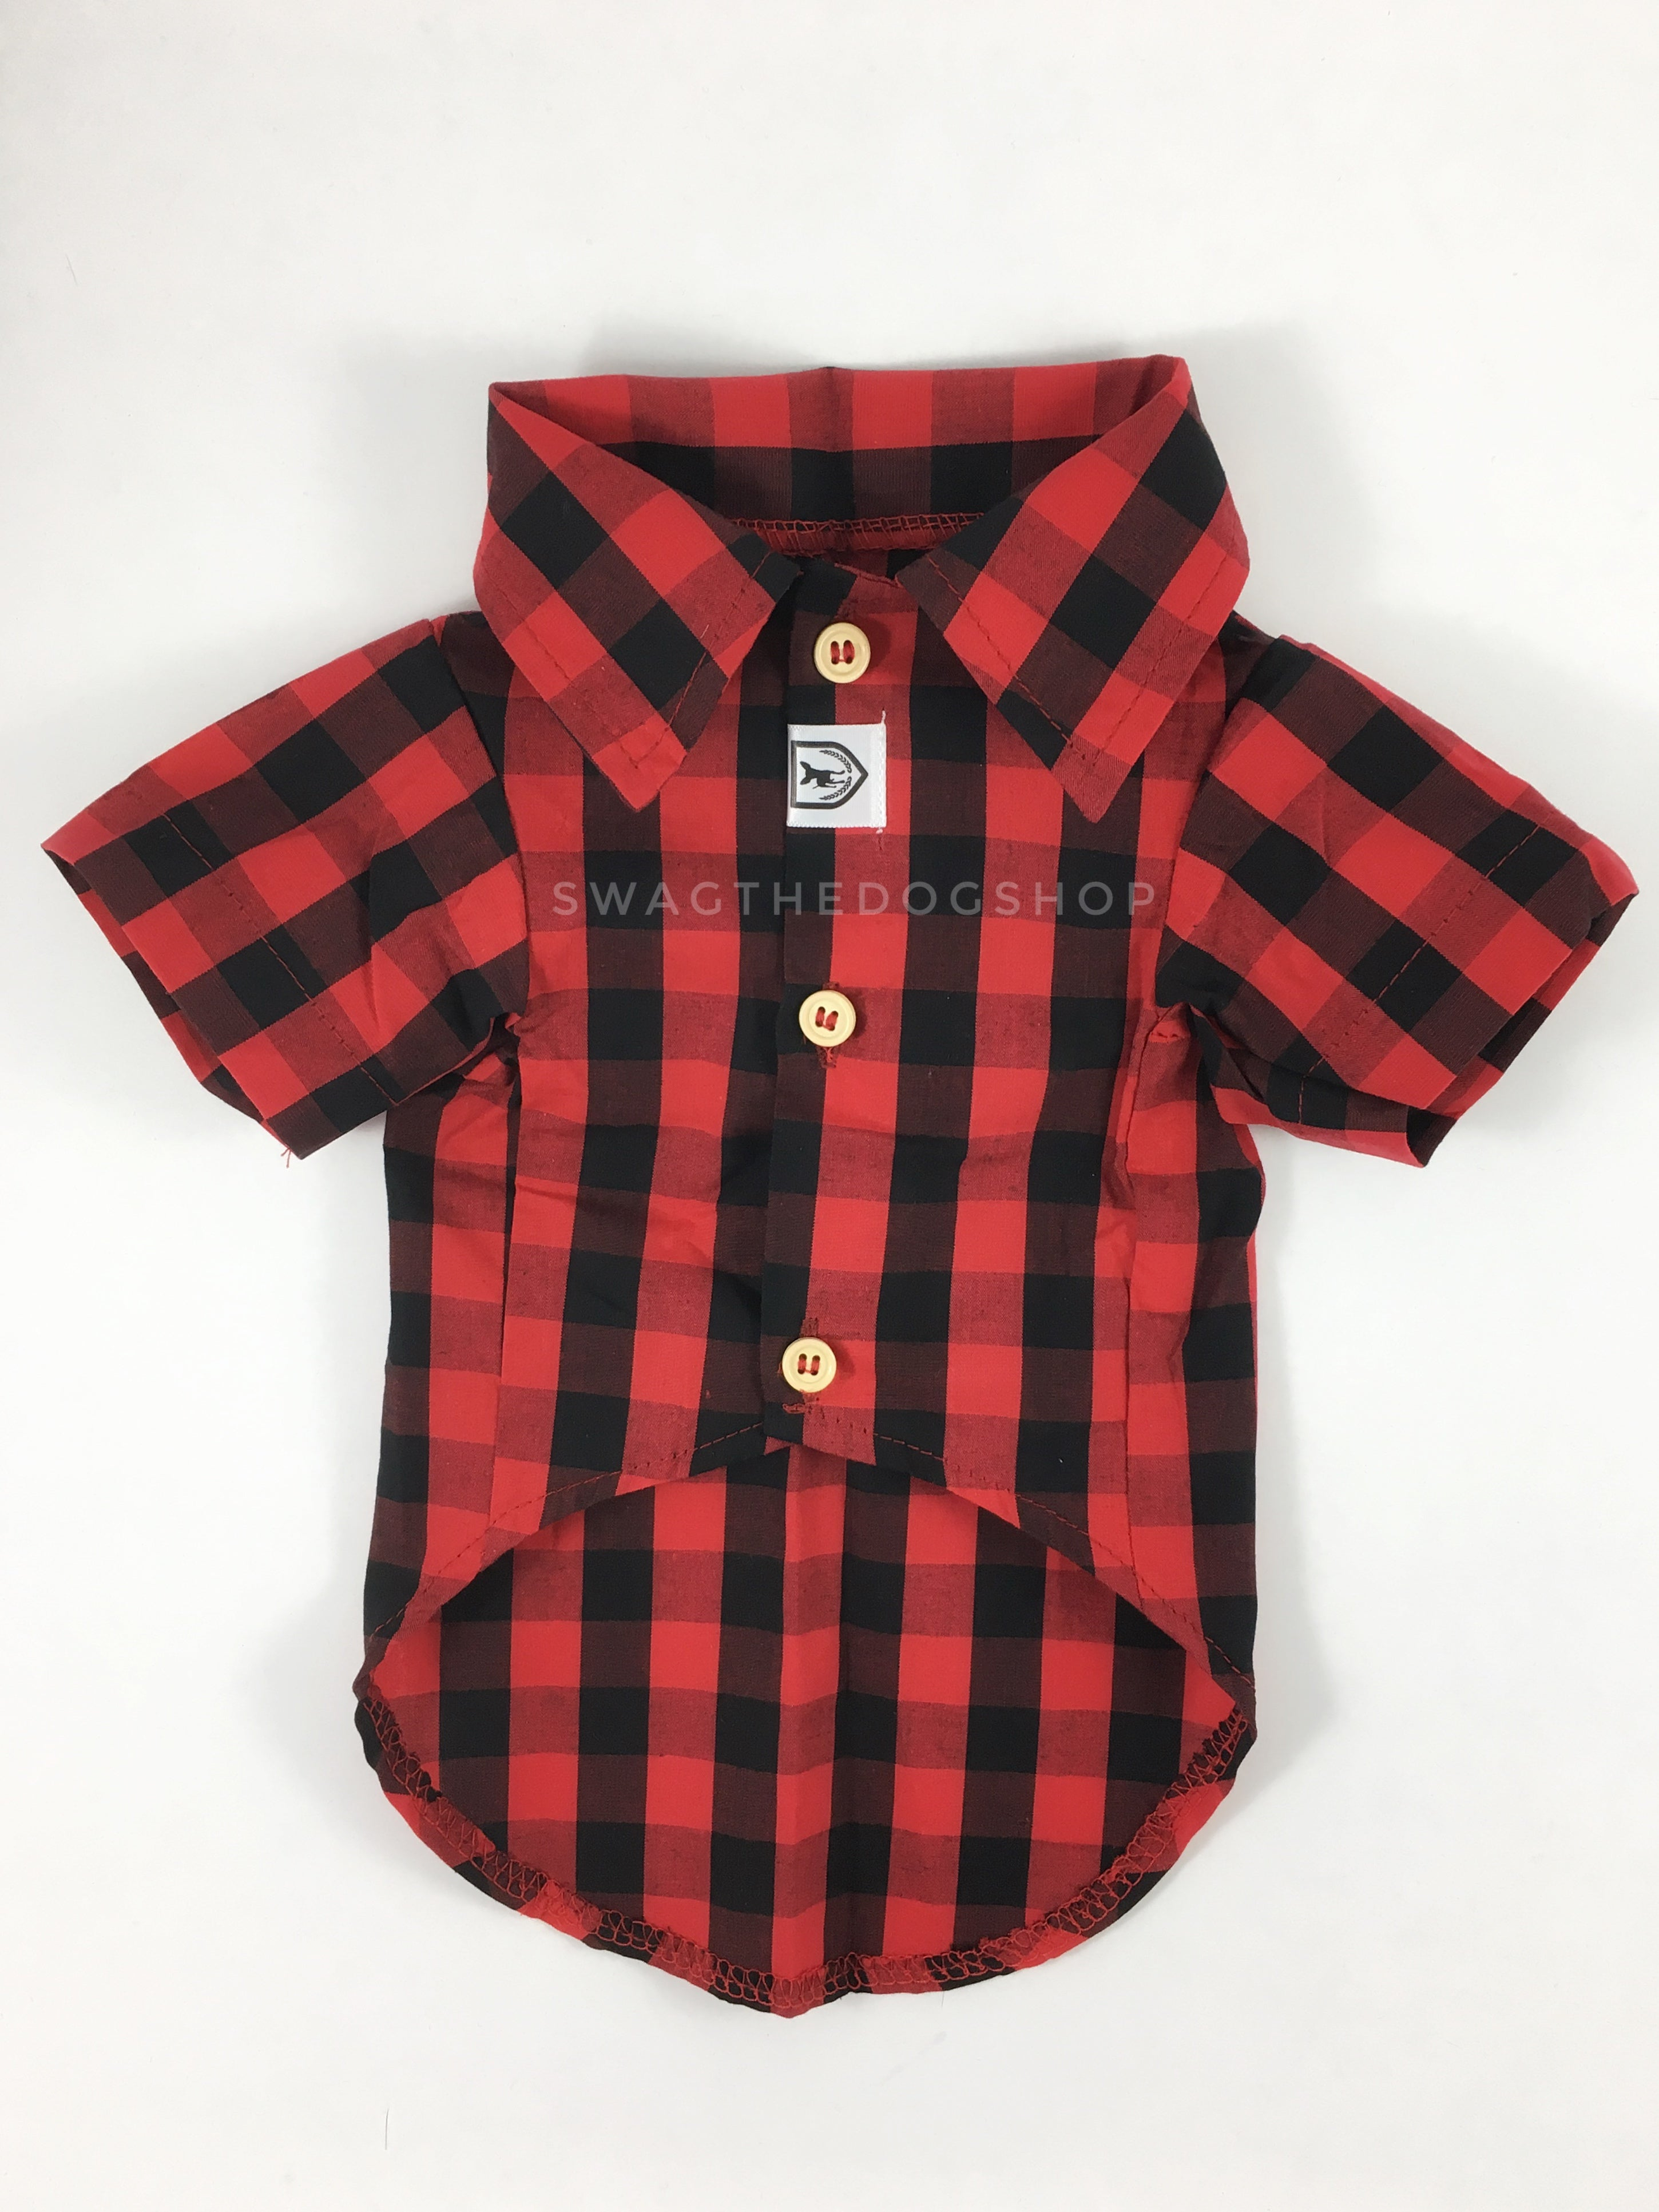 Kenora Summer Shirt - Product Front View. Black and Red Gingham Shirt